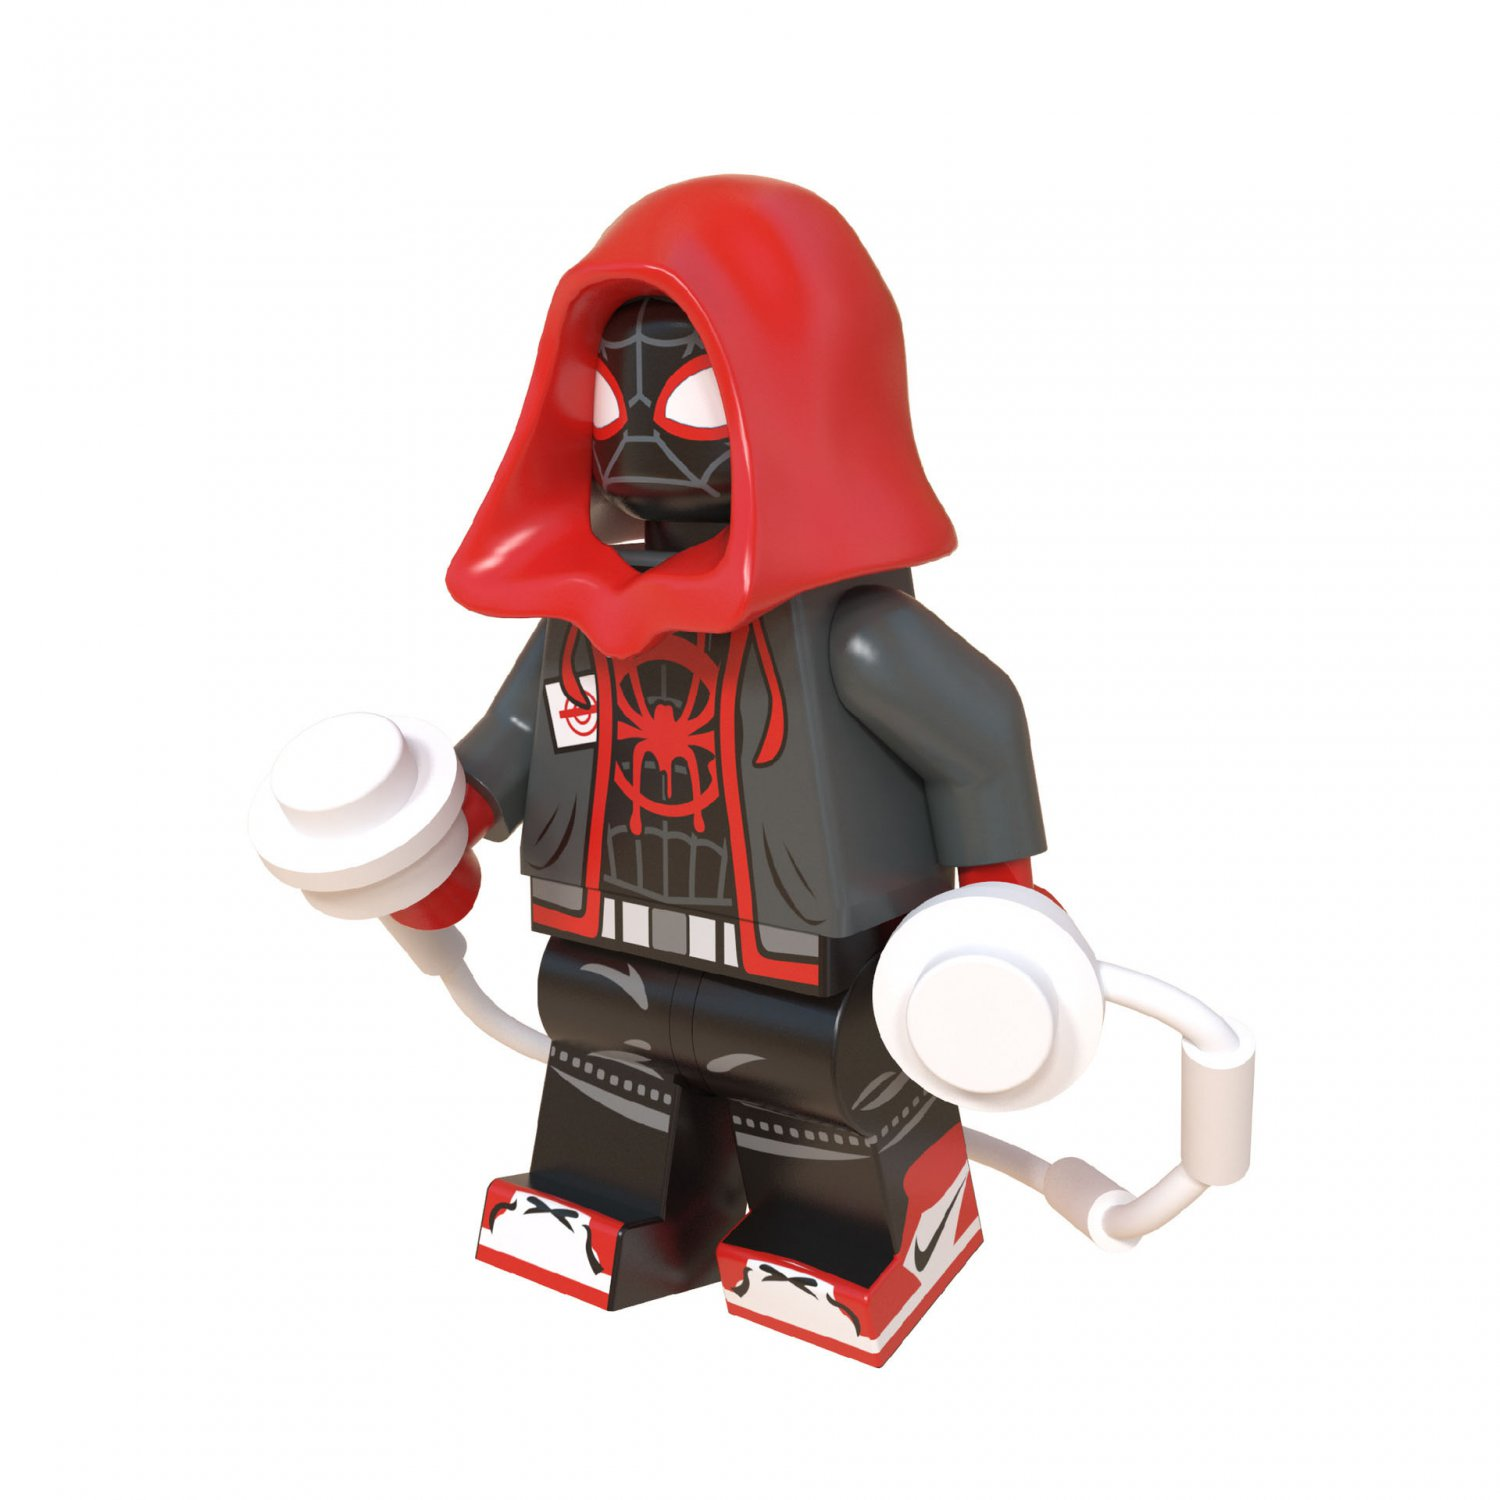 Miles Morales Minifigures Lego Compatible Spider-Man Into the Spider-Verse Toy